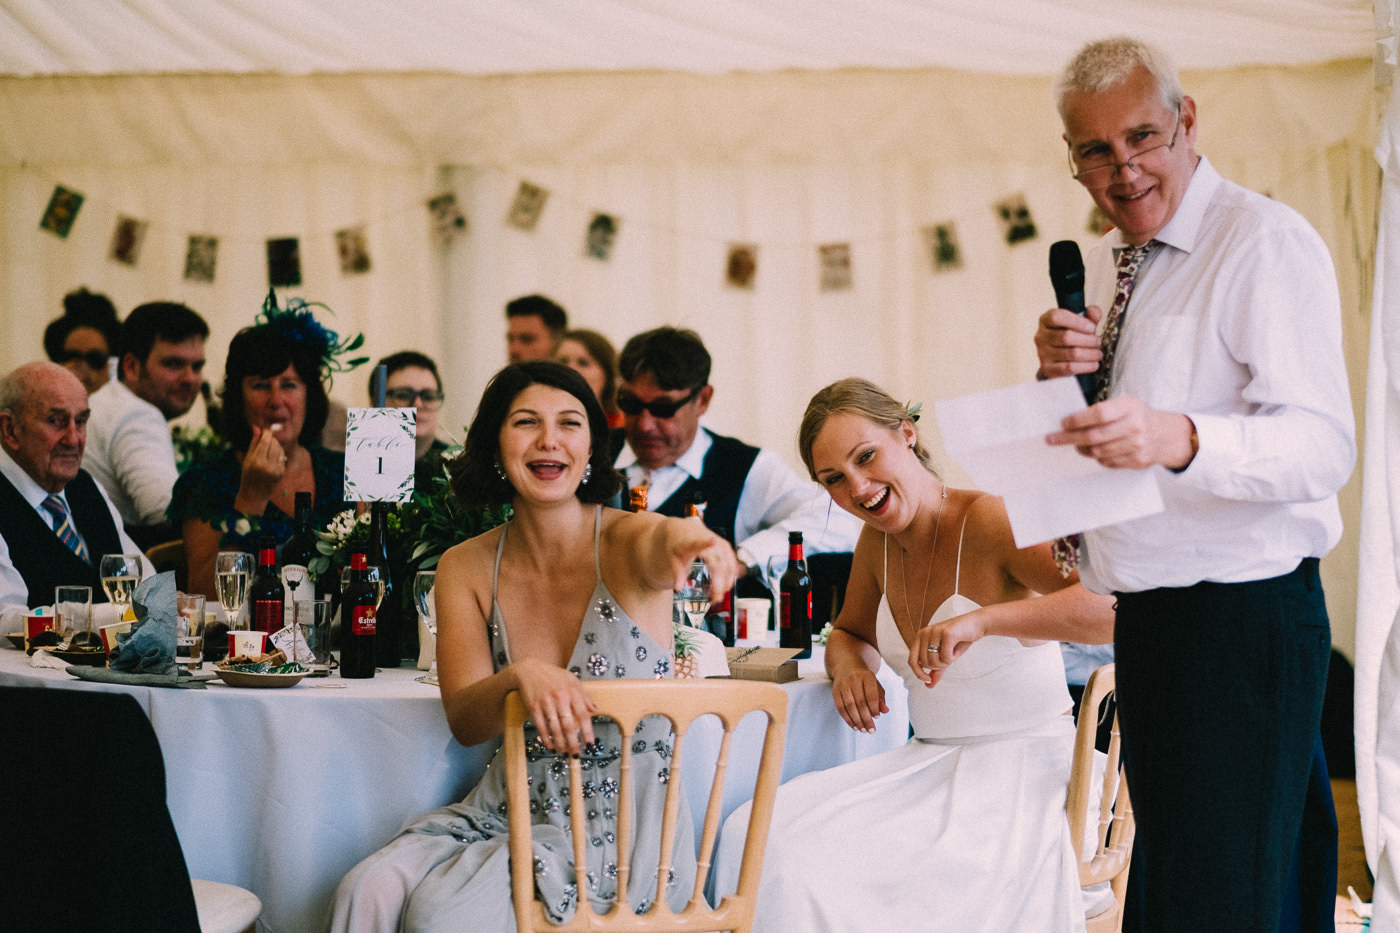 COWBRIDGE GLYNDWR VINEYARD WEDDING PHOTOGRAPHY CARDIFF SOUTH WALES 051